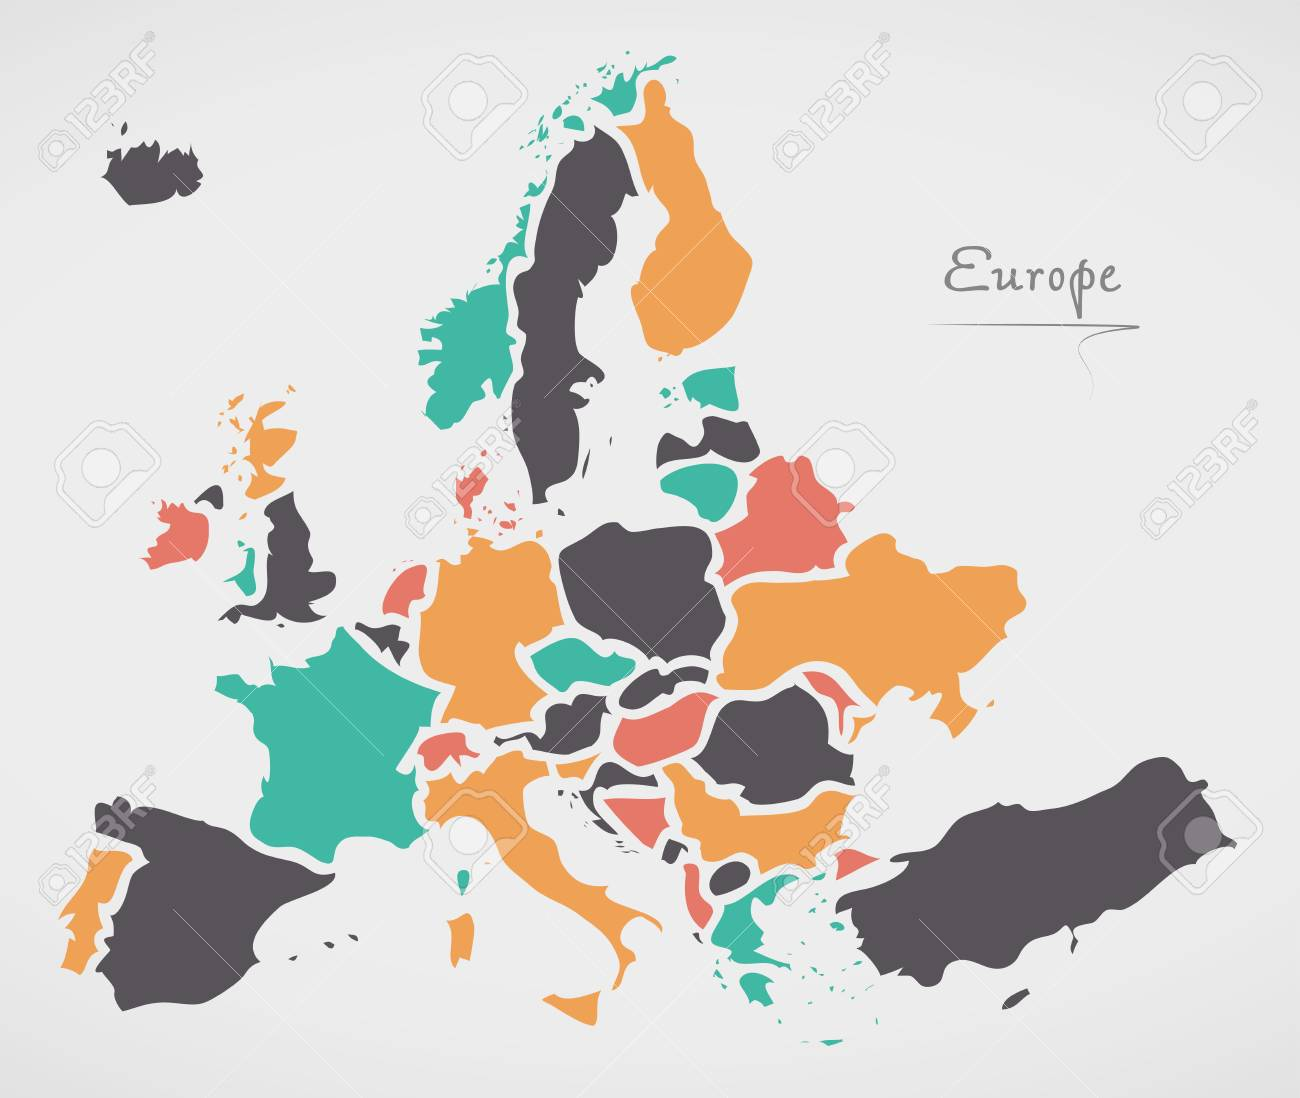 Mainland Europe Map.Europe Mainland Map With States And Modern Round Shapes Royalty Free